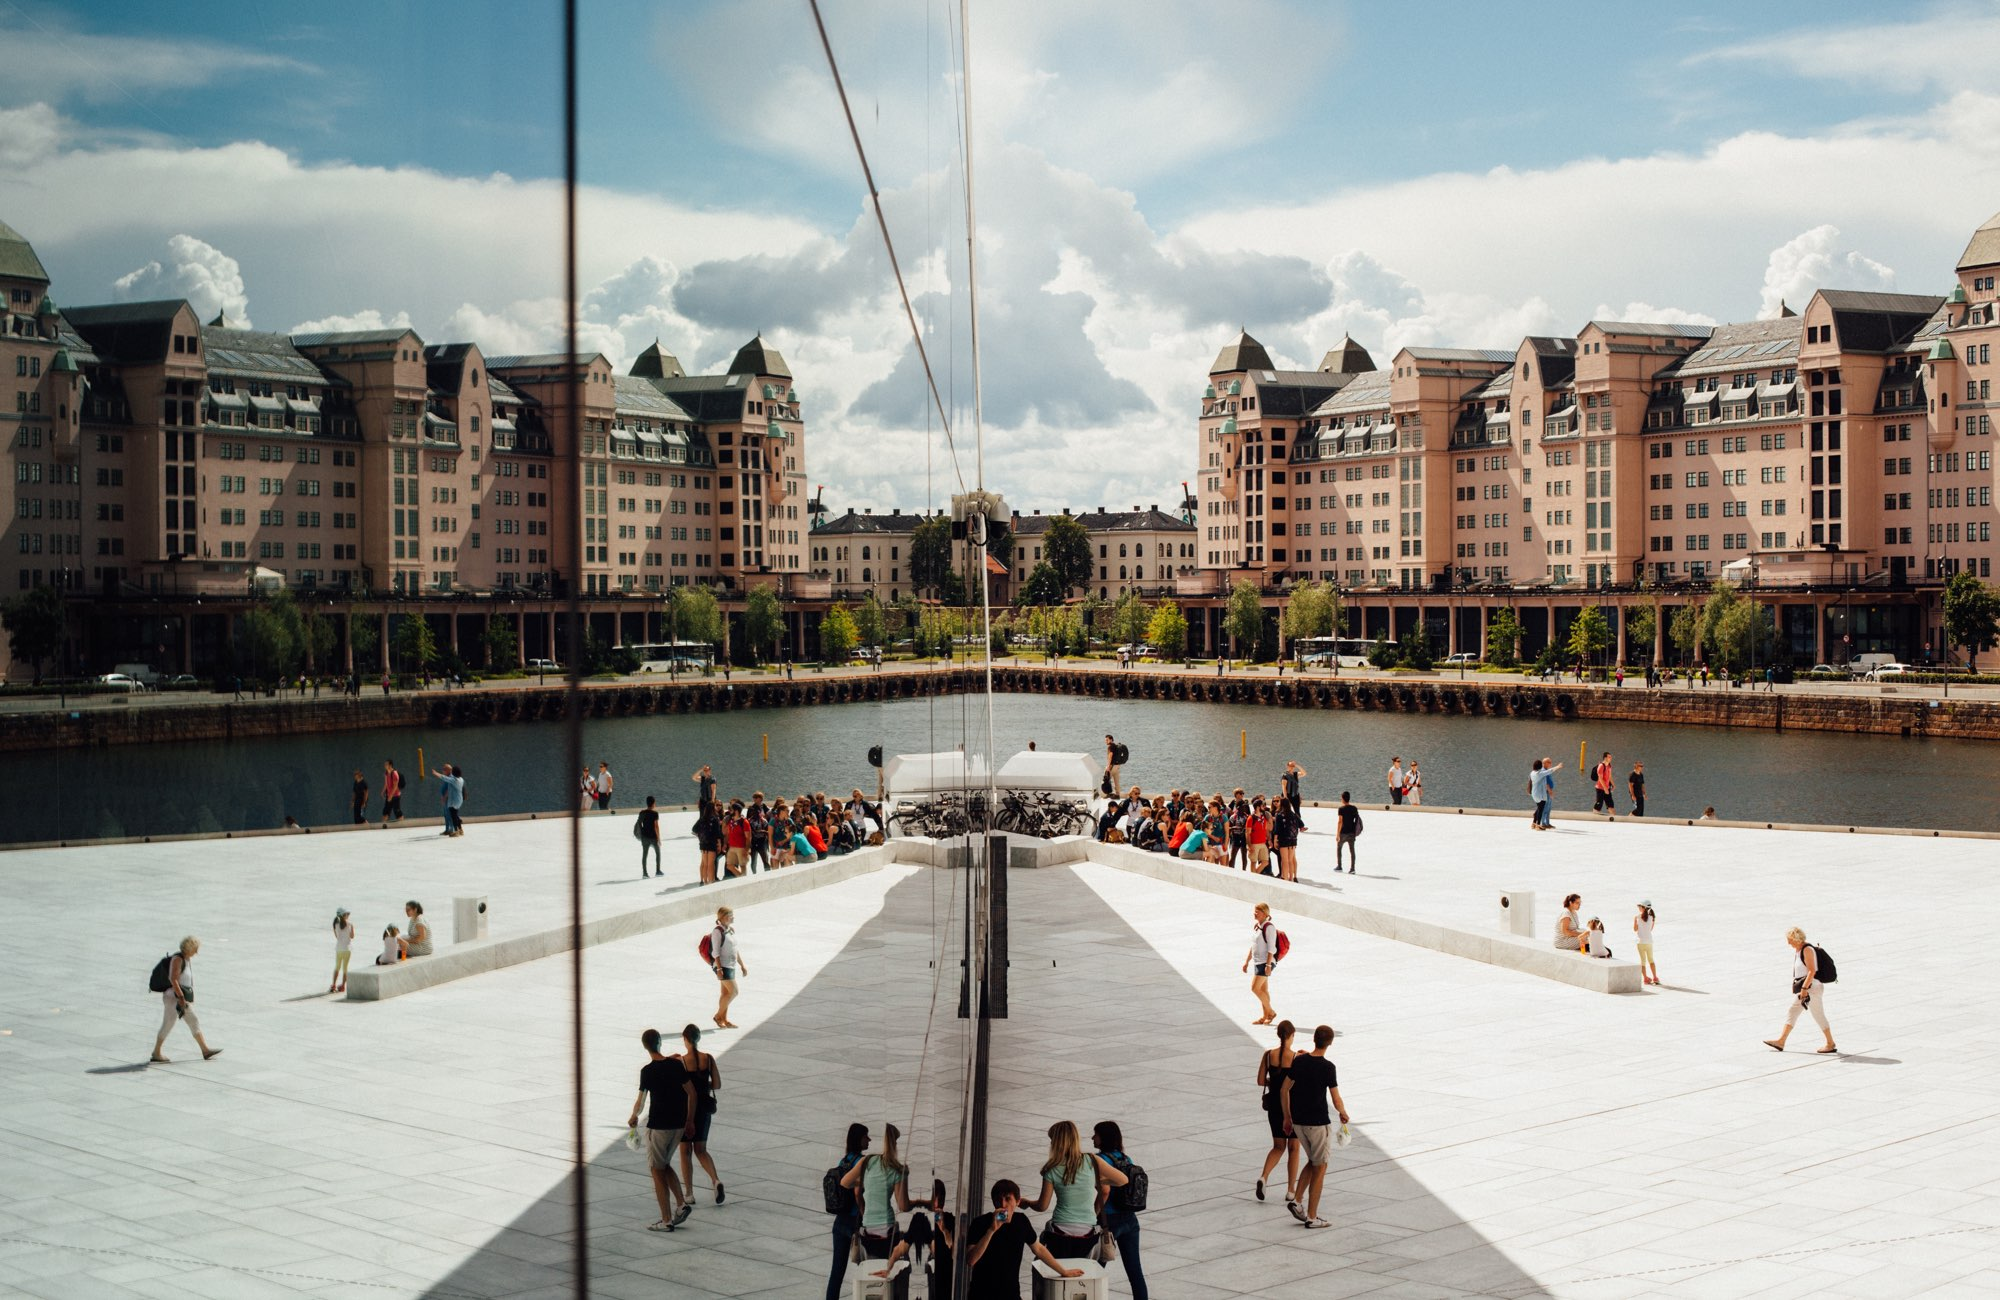 Exabel's guide to everyday life in Oslo